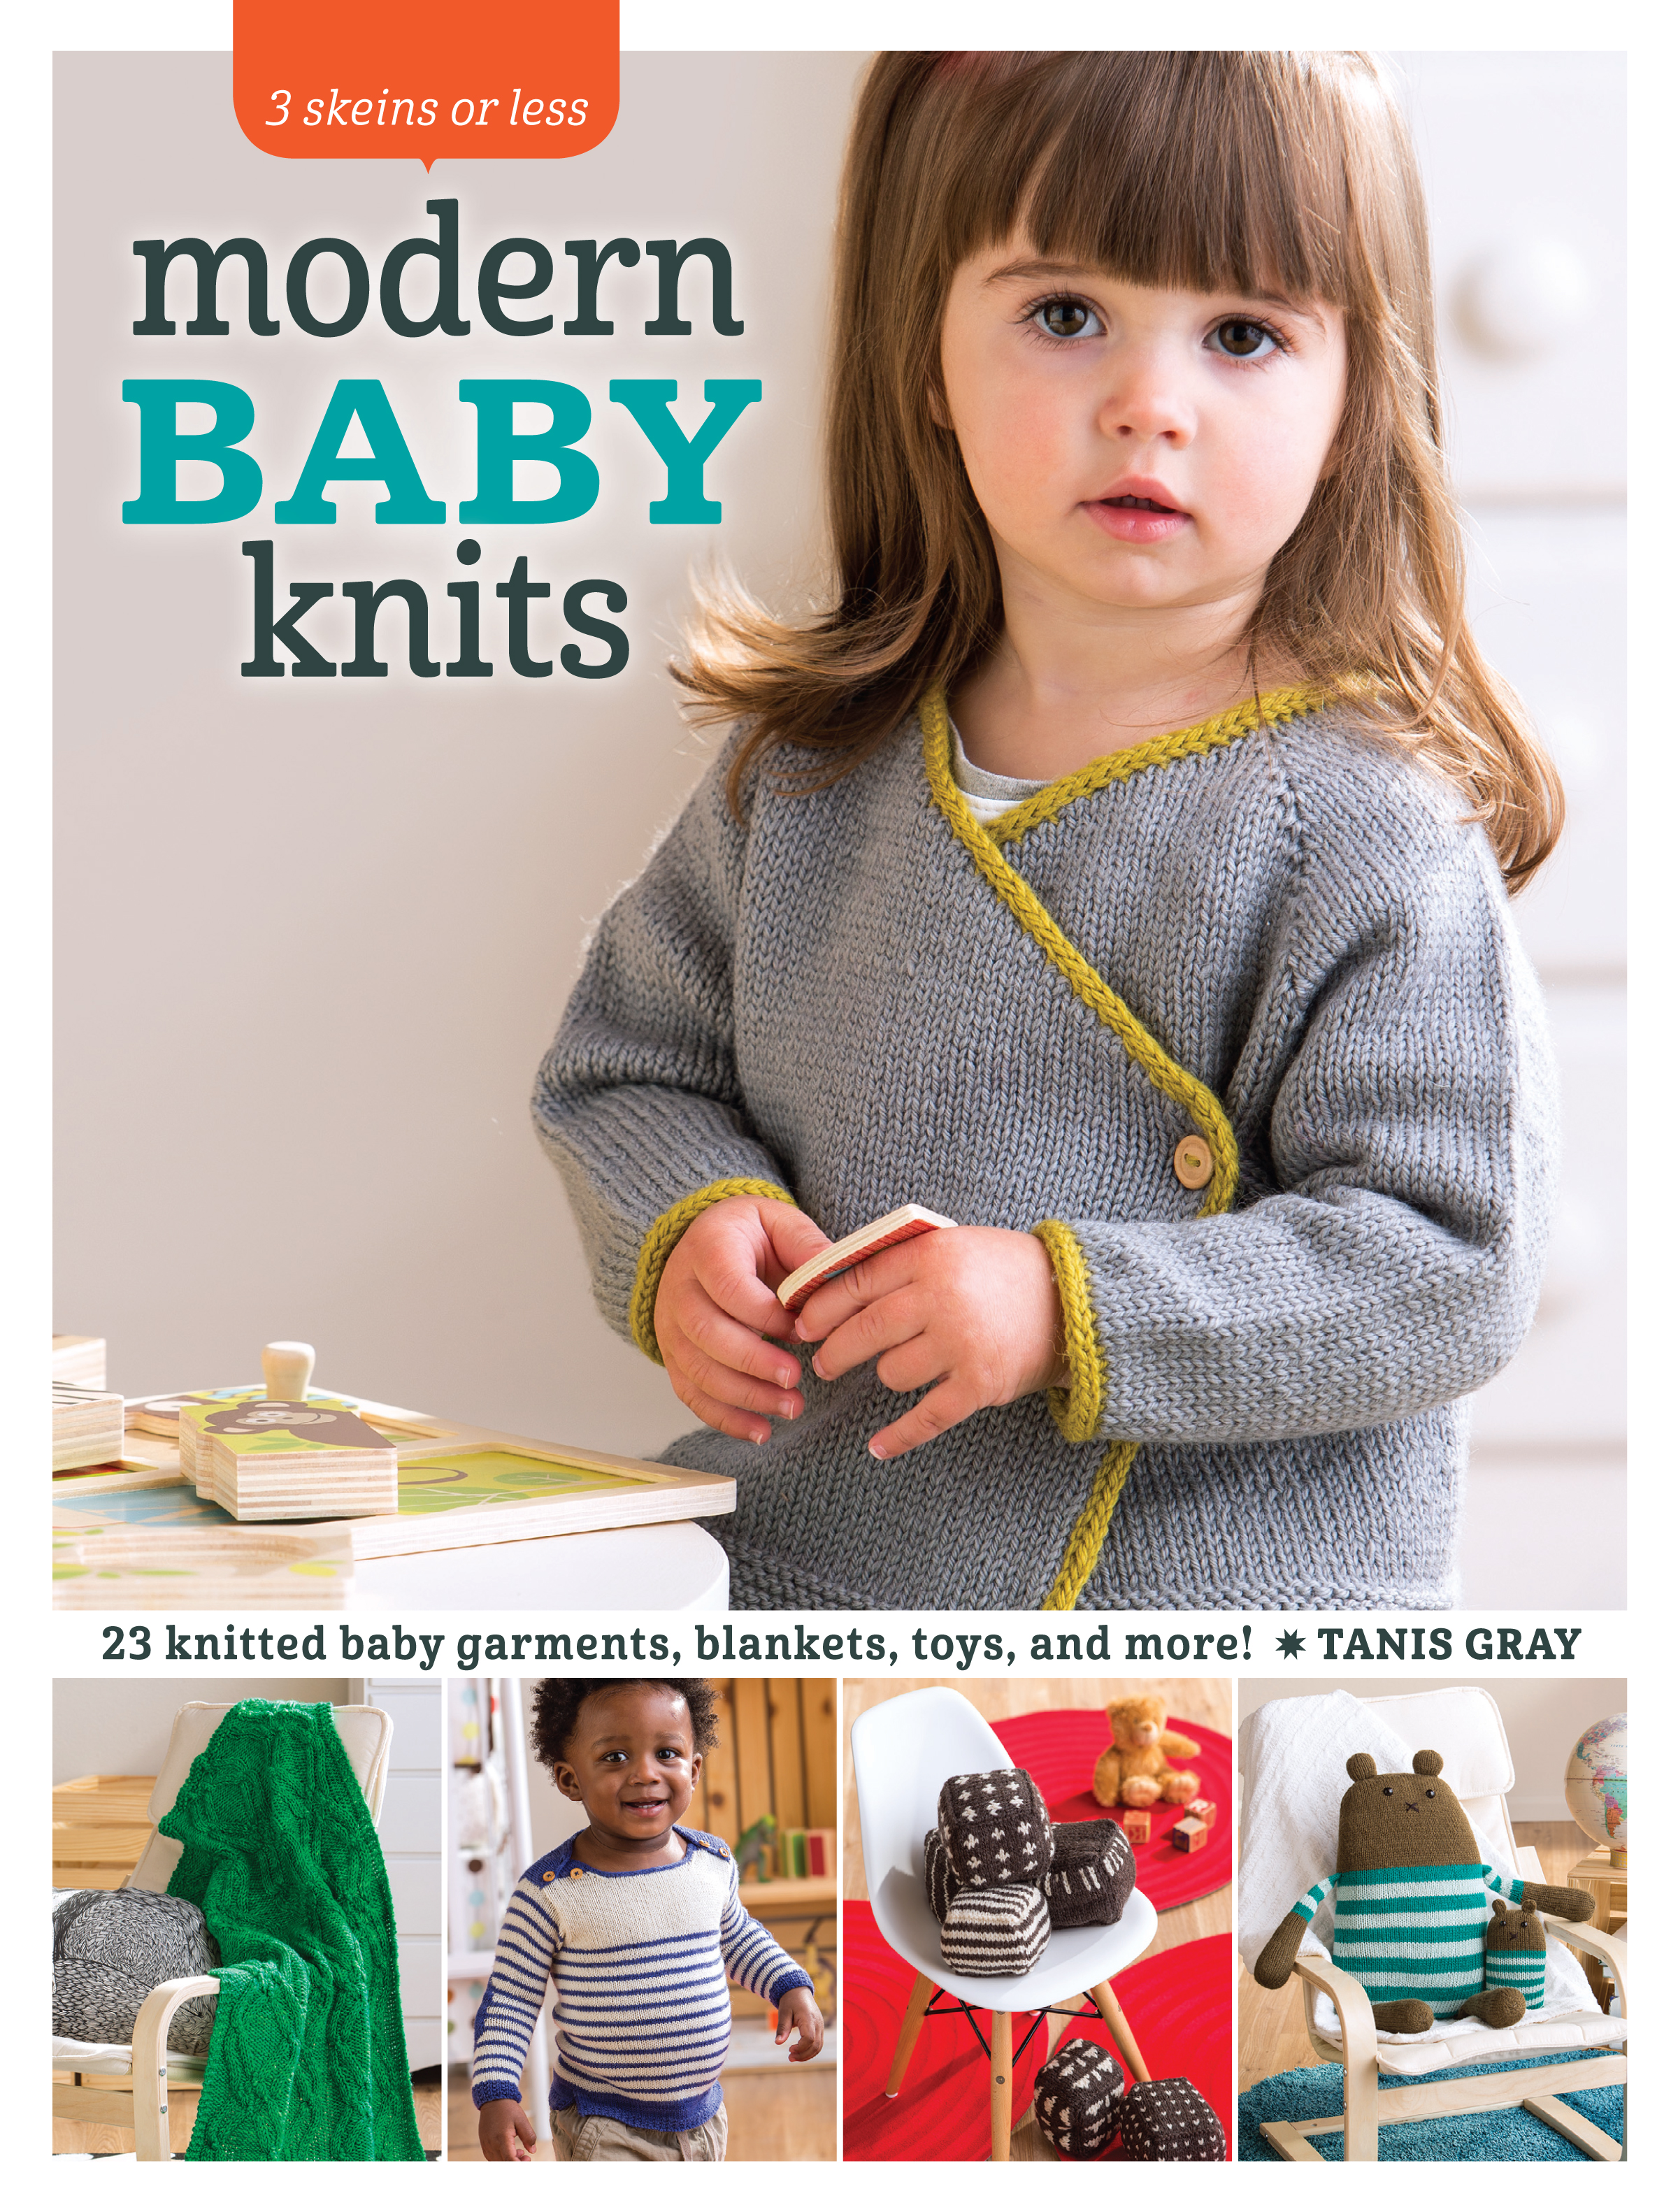 3 Skeins or Less - Modern Baby Knits by Tanis Gray on VeryShannon.com